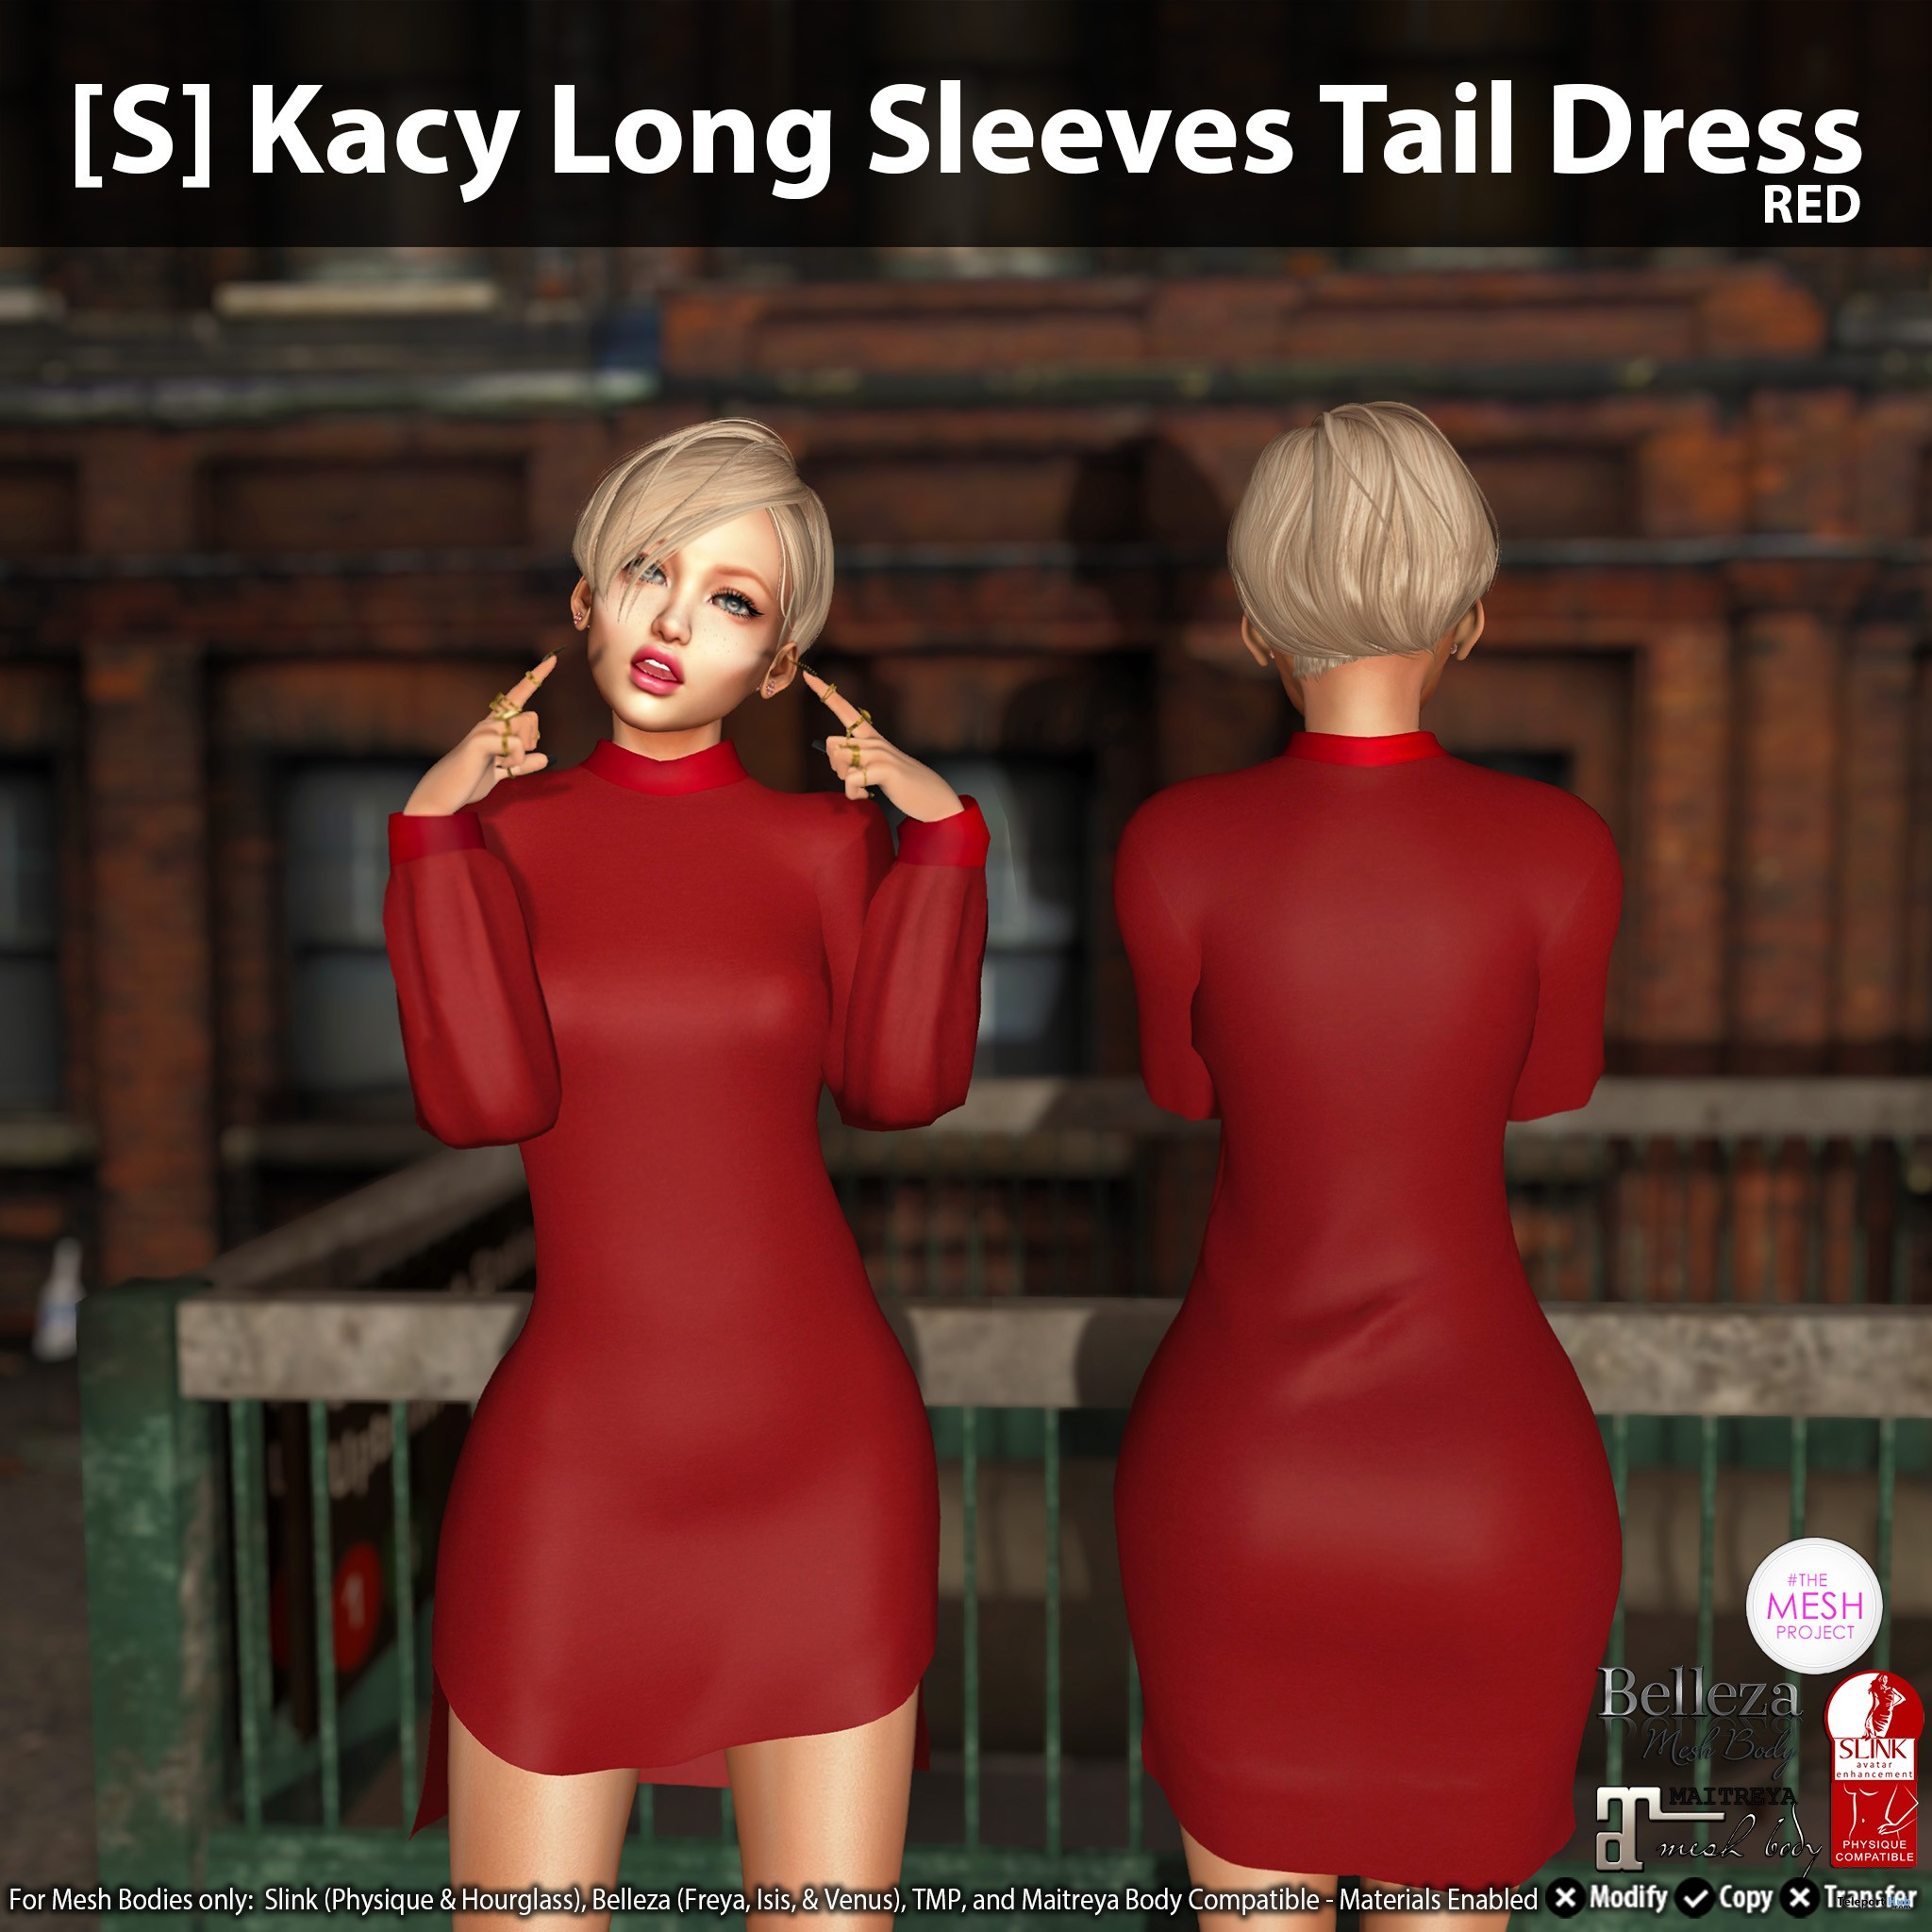 New Release: [S] Kacy Long Sleeves Tail Dress by [satus Inc] - Teleport Hub - teleporthub.com